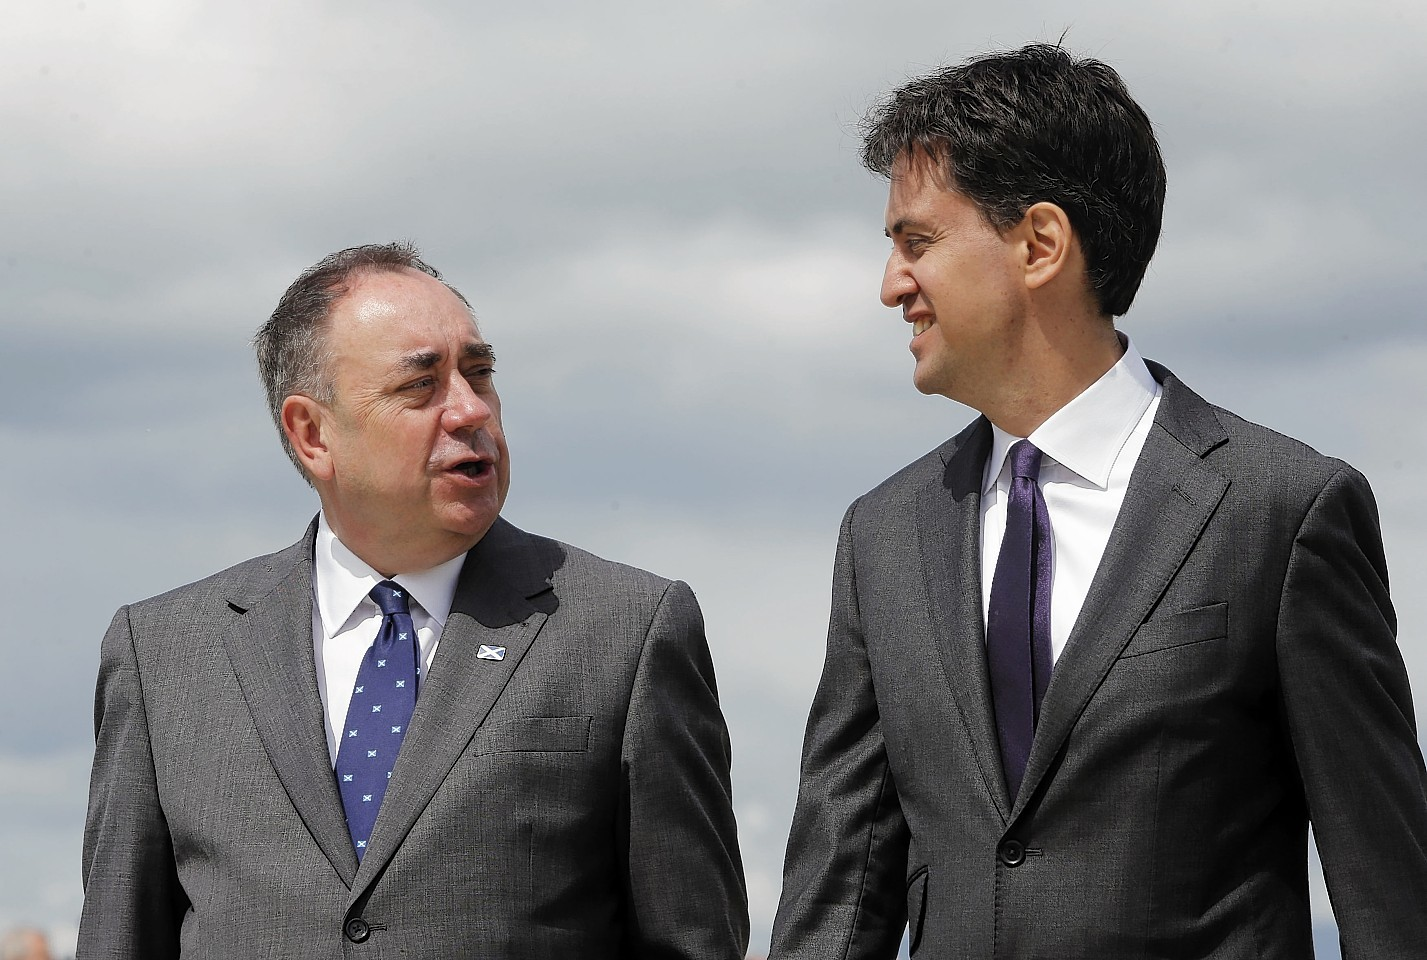 David Cameron says Ed Miliband wants to crawl to power in Alex Salmond's pocket